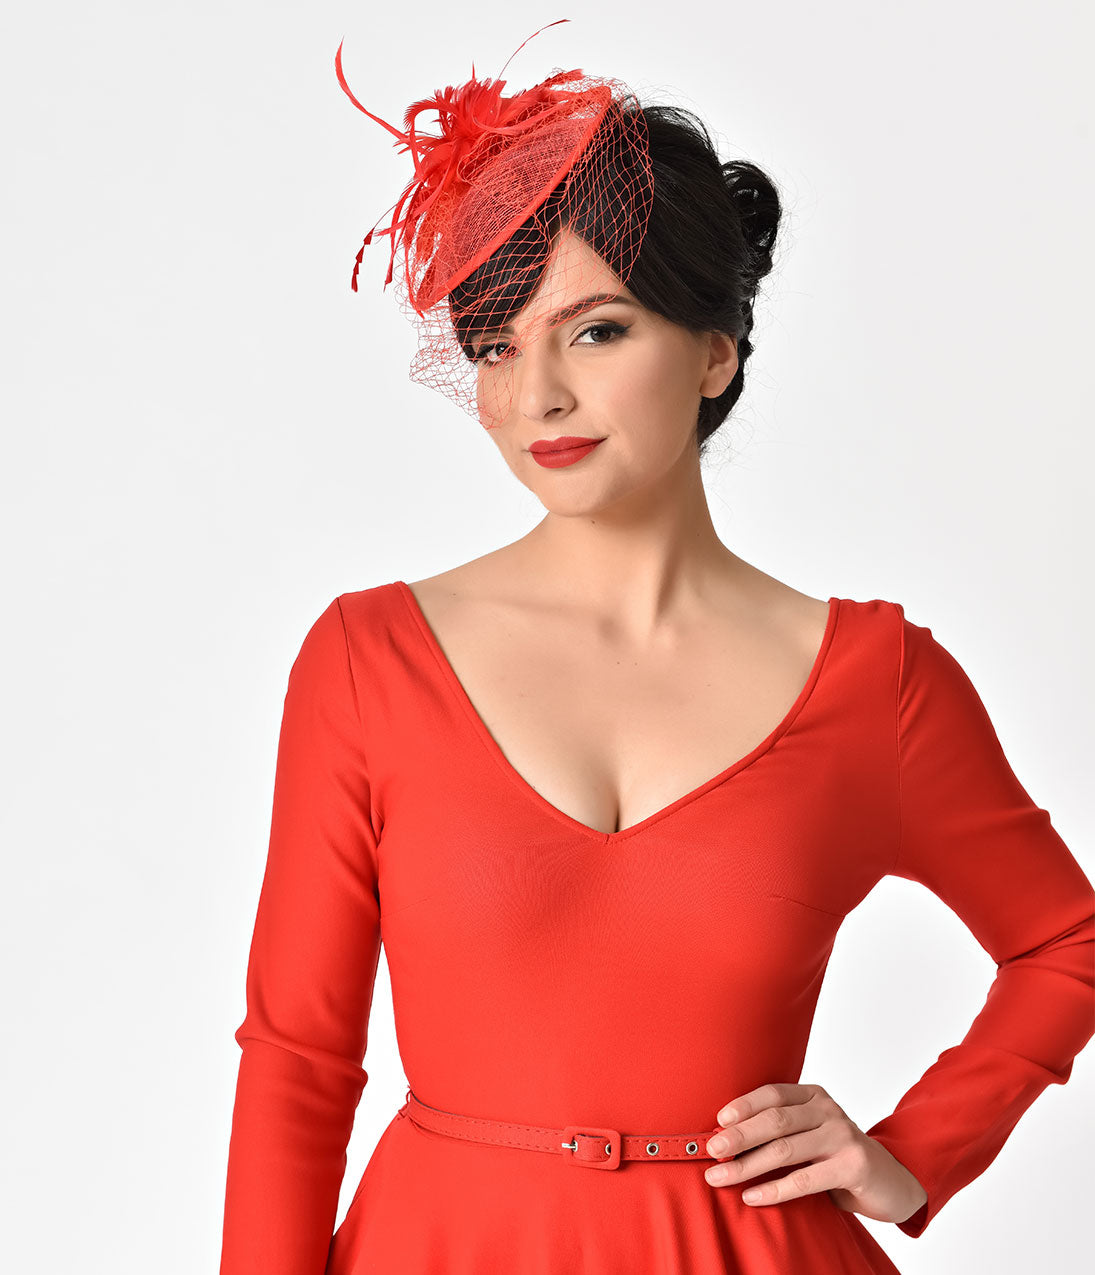 1950s Women's Hat Styles & History Unique Vintage 1940S Style Red Feathered Sinamay Fascinator $36.00 AT vintagedancer.com